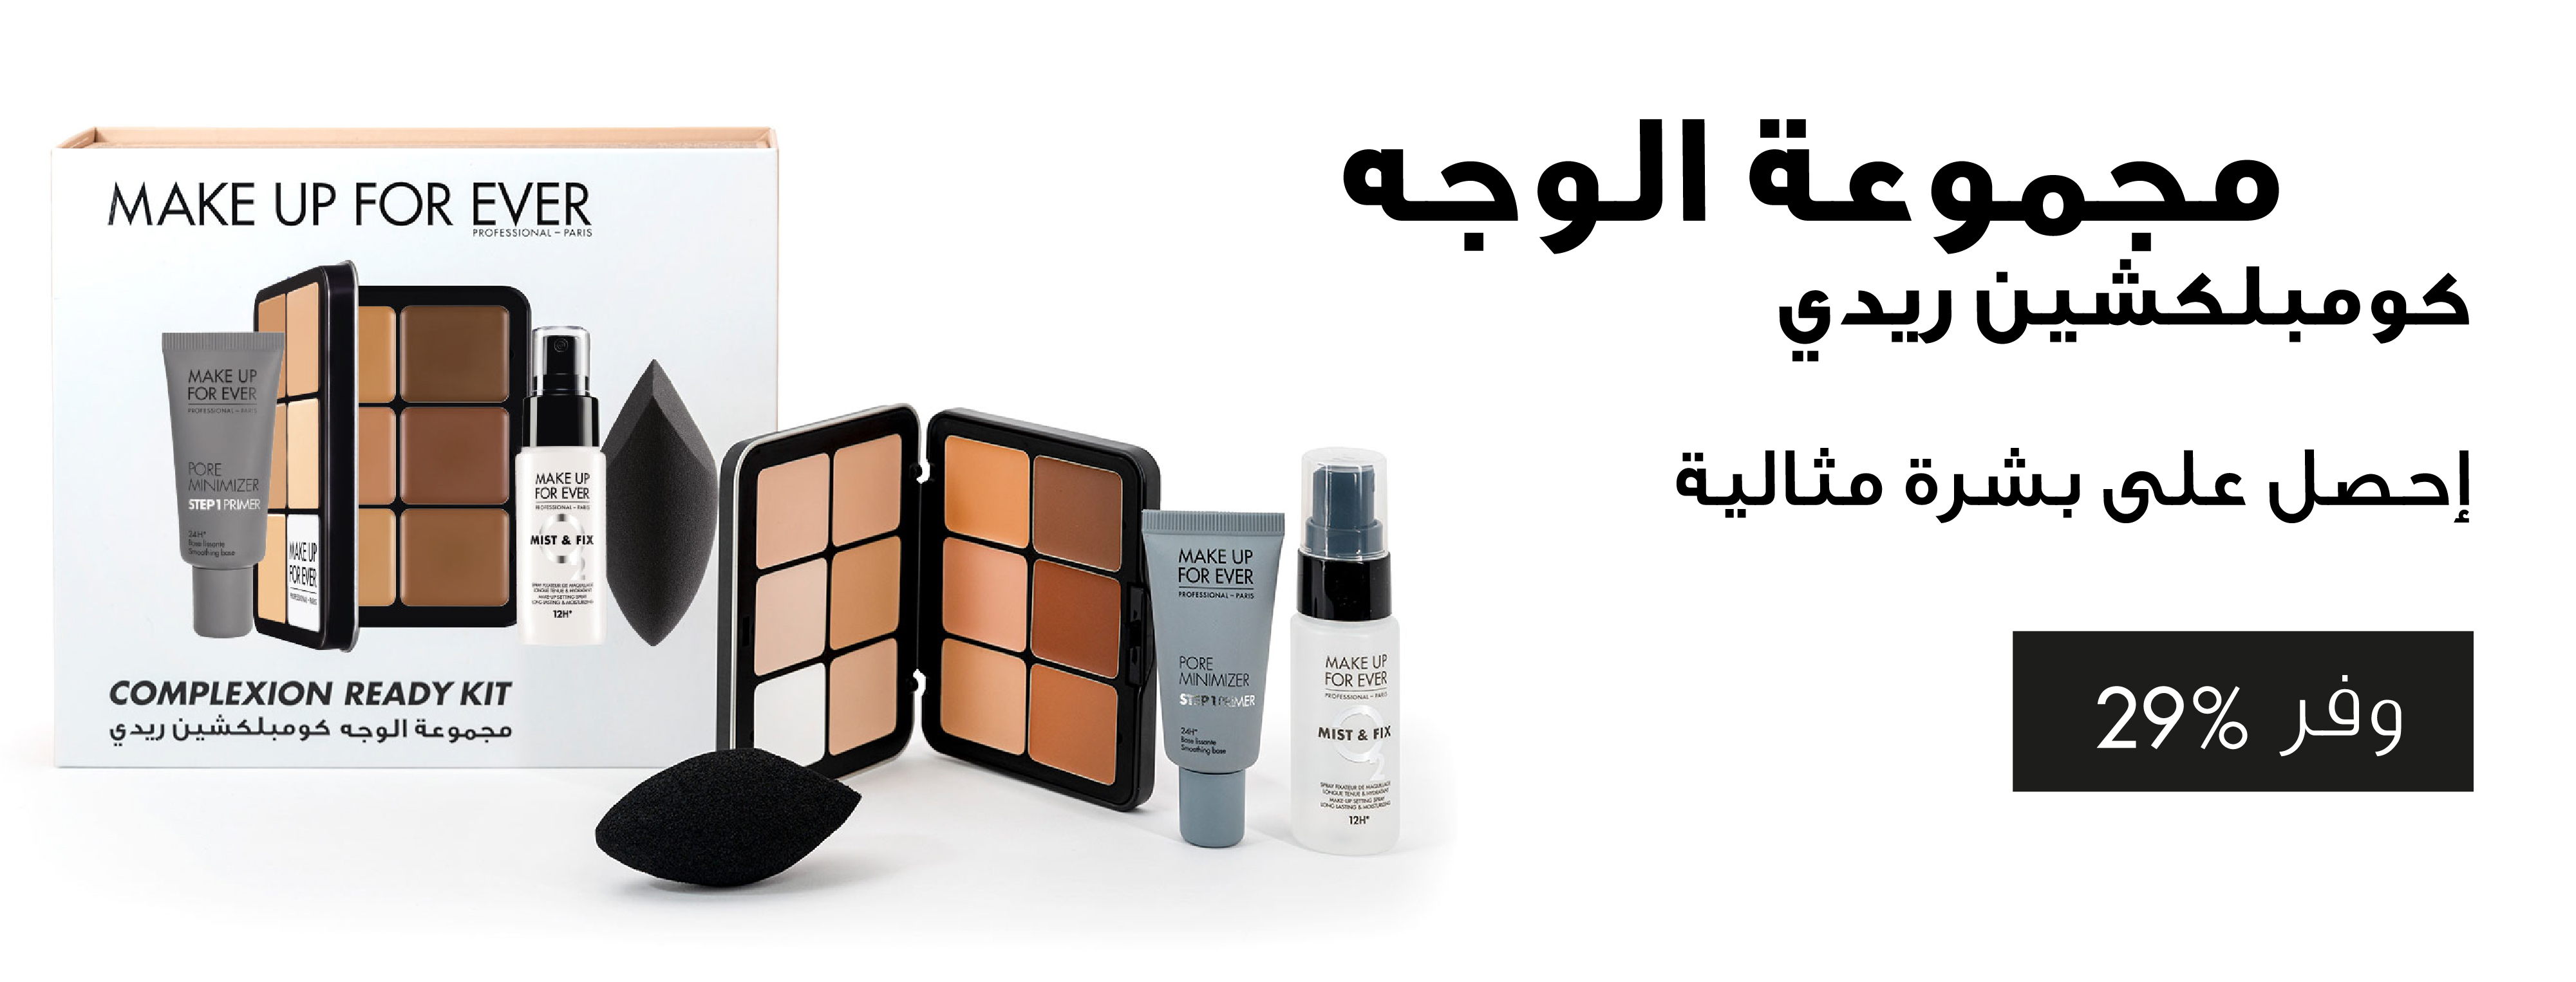 MAKE UP FOR EVER - COMPLEXION READY KIT